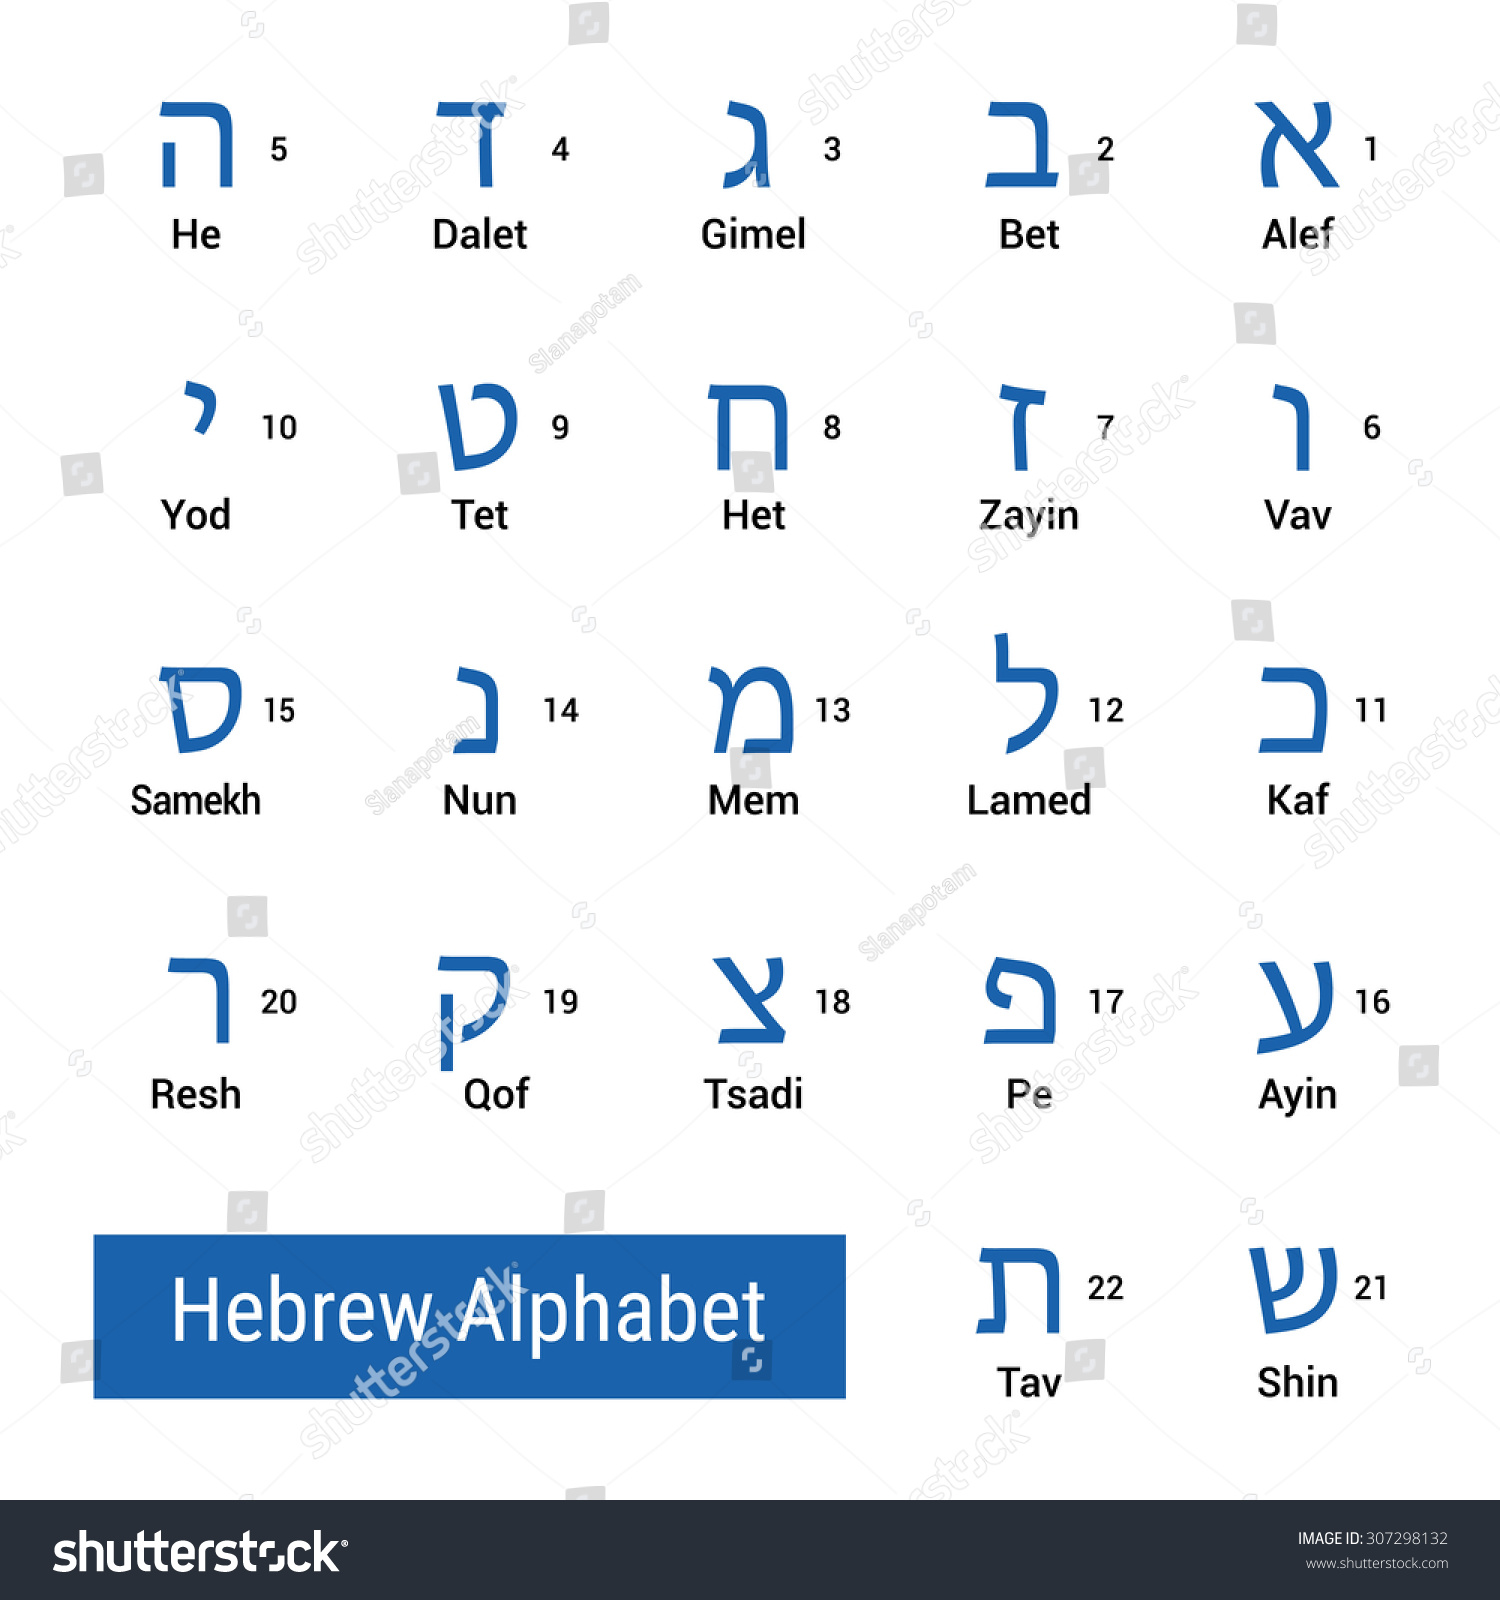 English To Hebrew English Alphabet Pictures To Pin On